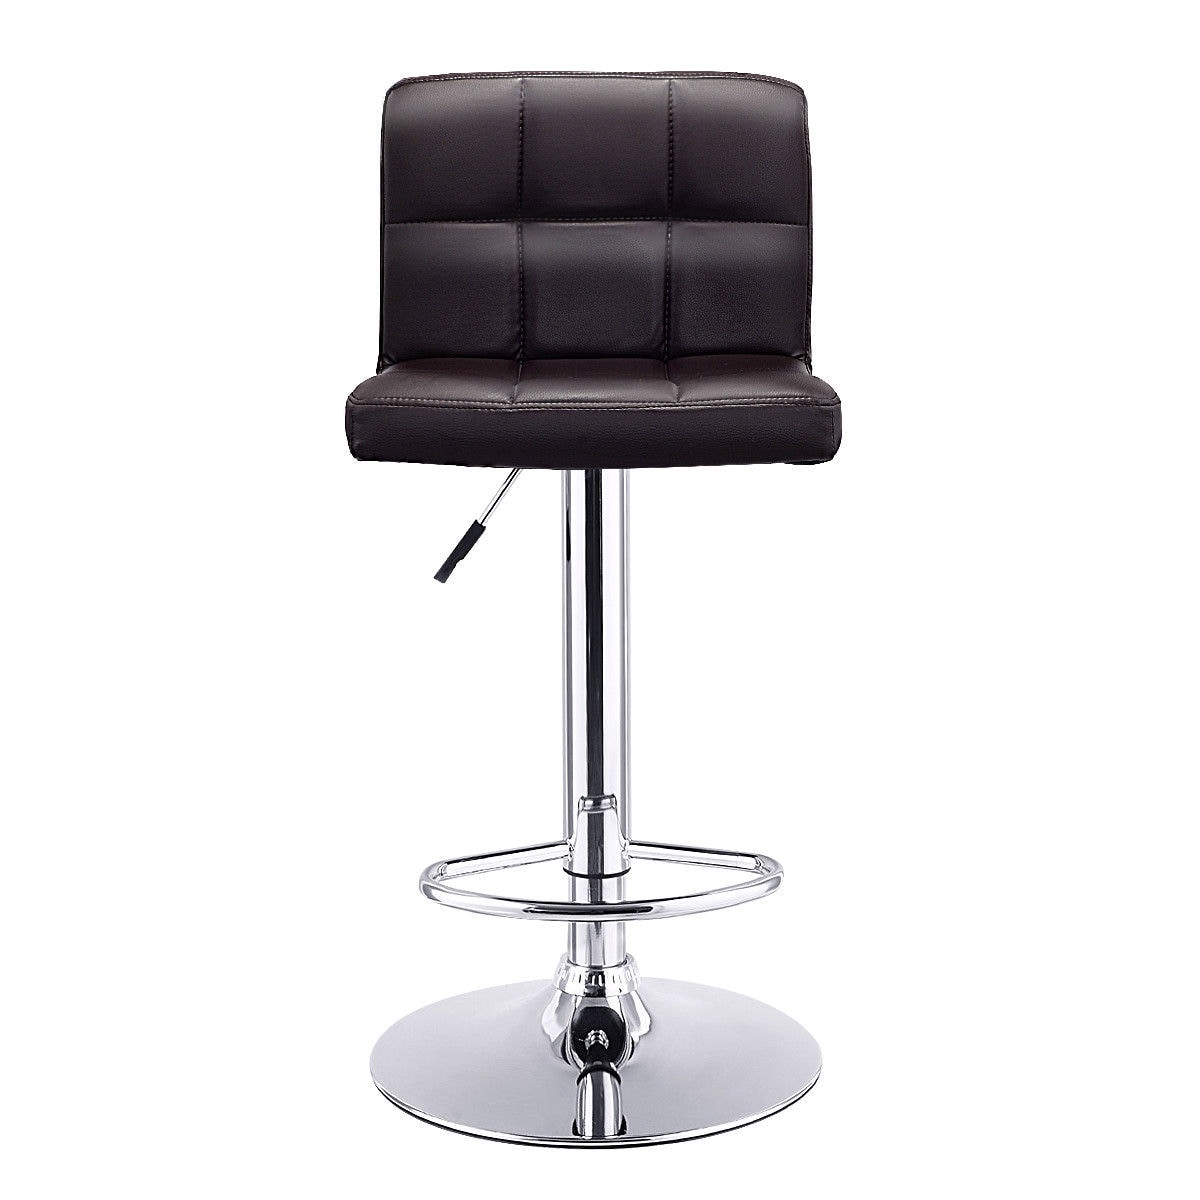 leather pub chair hanging chairs australia shop costway 1 pc bar stool swivel adjustable pu barstools bistro brown free shipping today overstock com 16065838